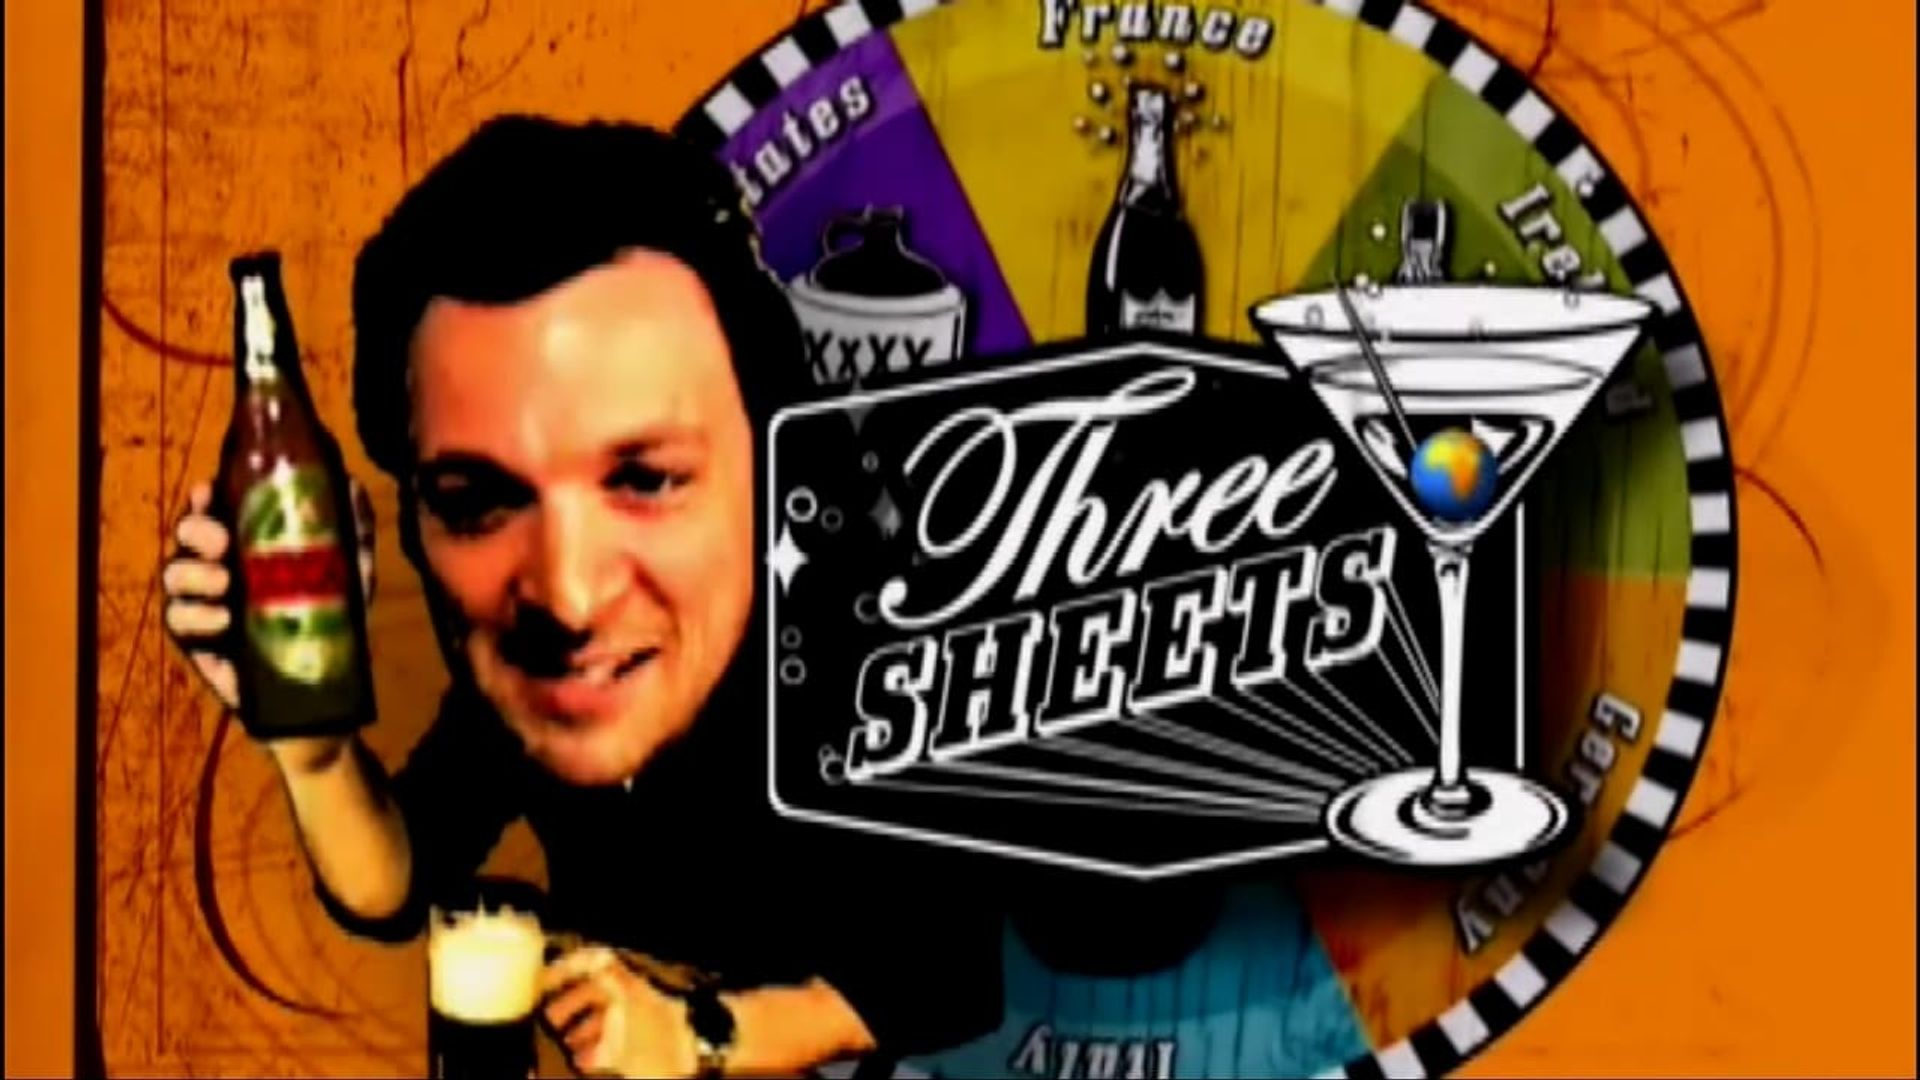 3 Sheets To The Wind Tv Show three sheets - watch episodes on hulu or streaming online